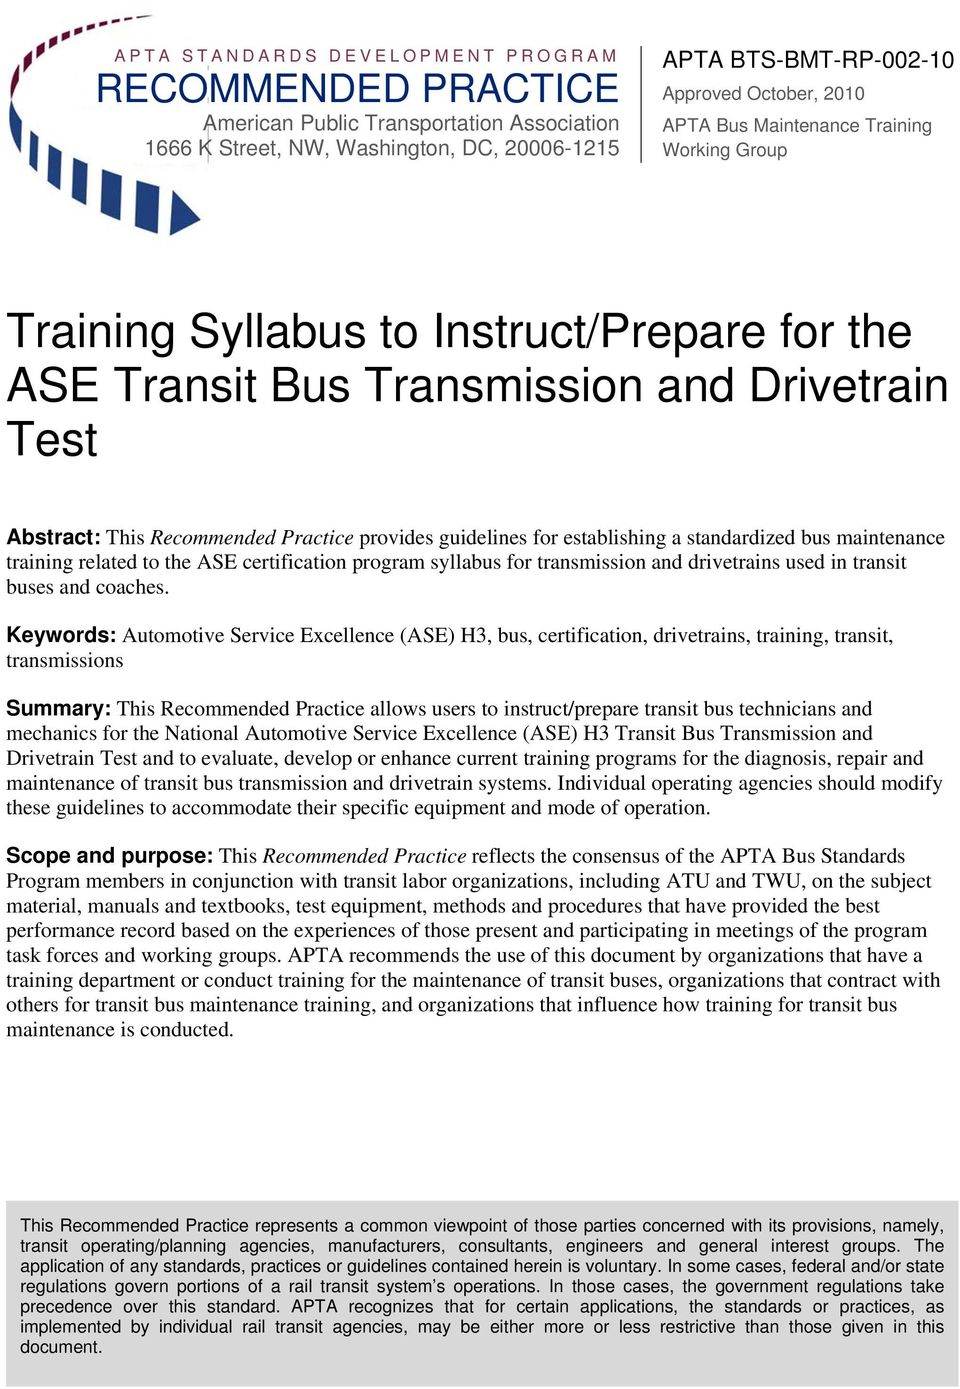 Training Syllabus To Instructprepare For The Ase Transit Bus